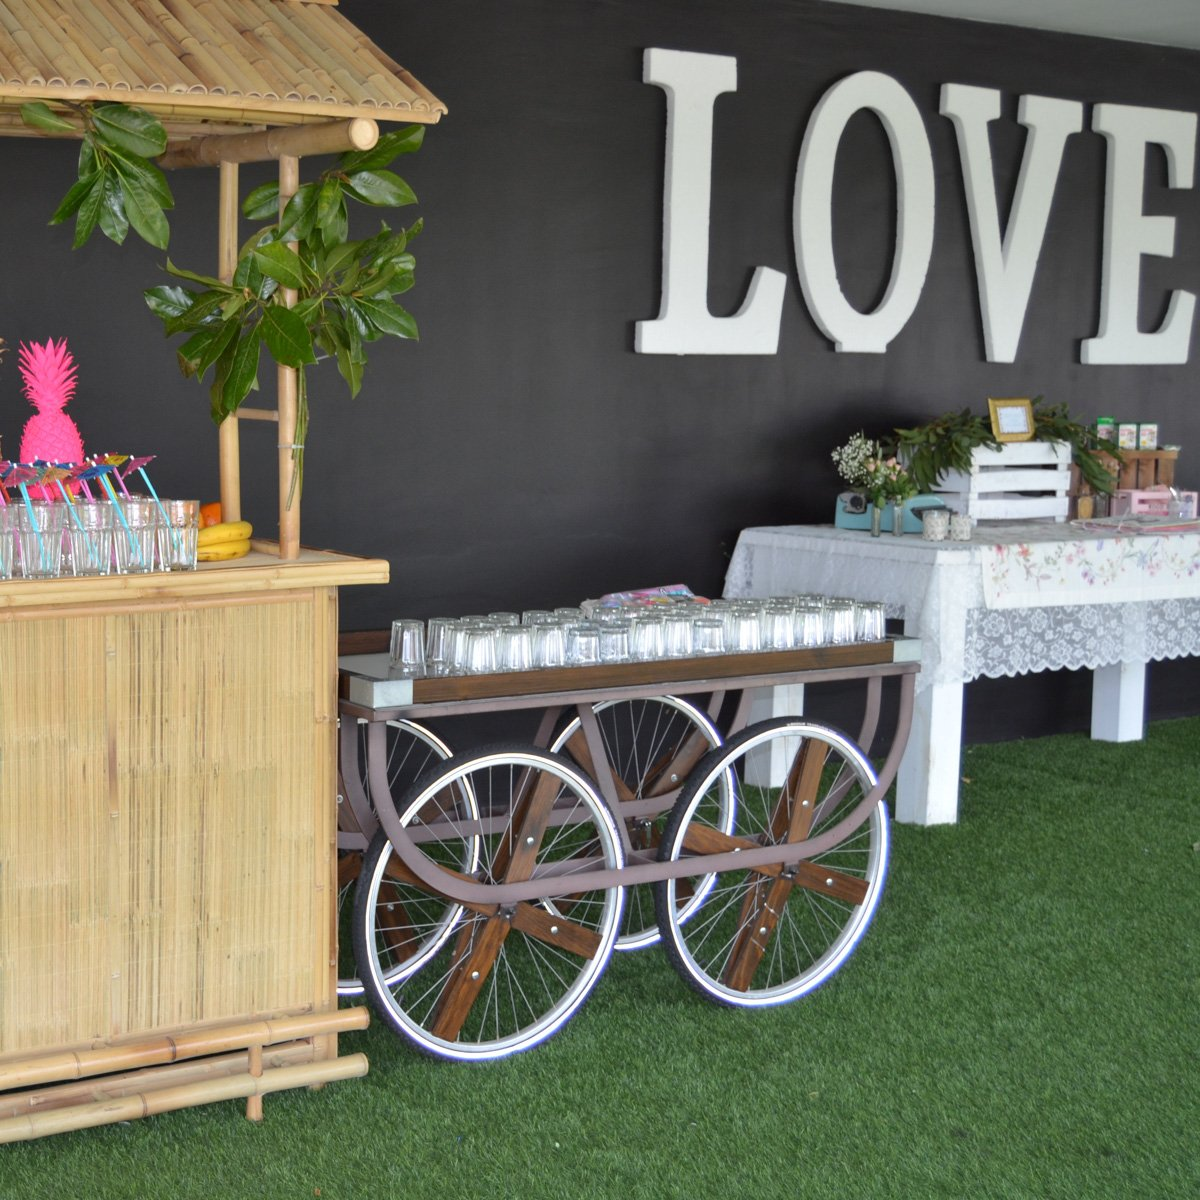 Lemonade Bar - Boda LoveStory - decoracion boda zaragoza